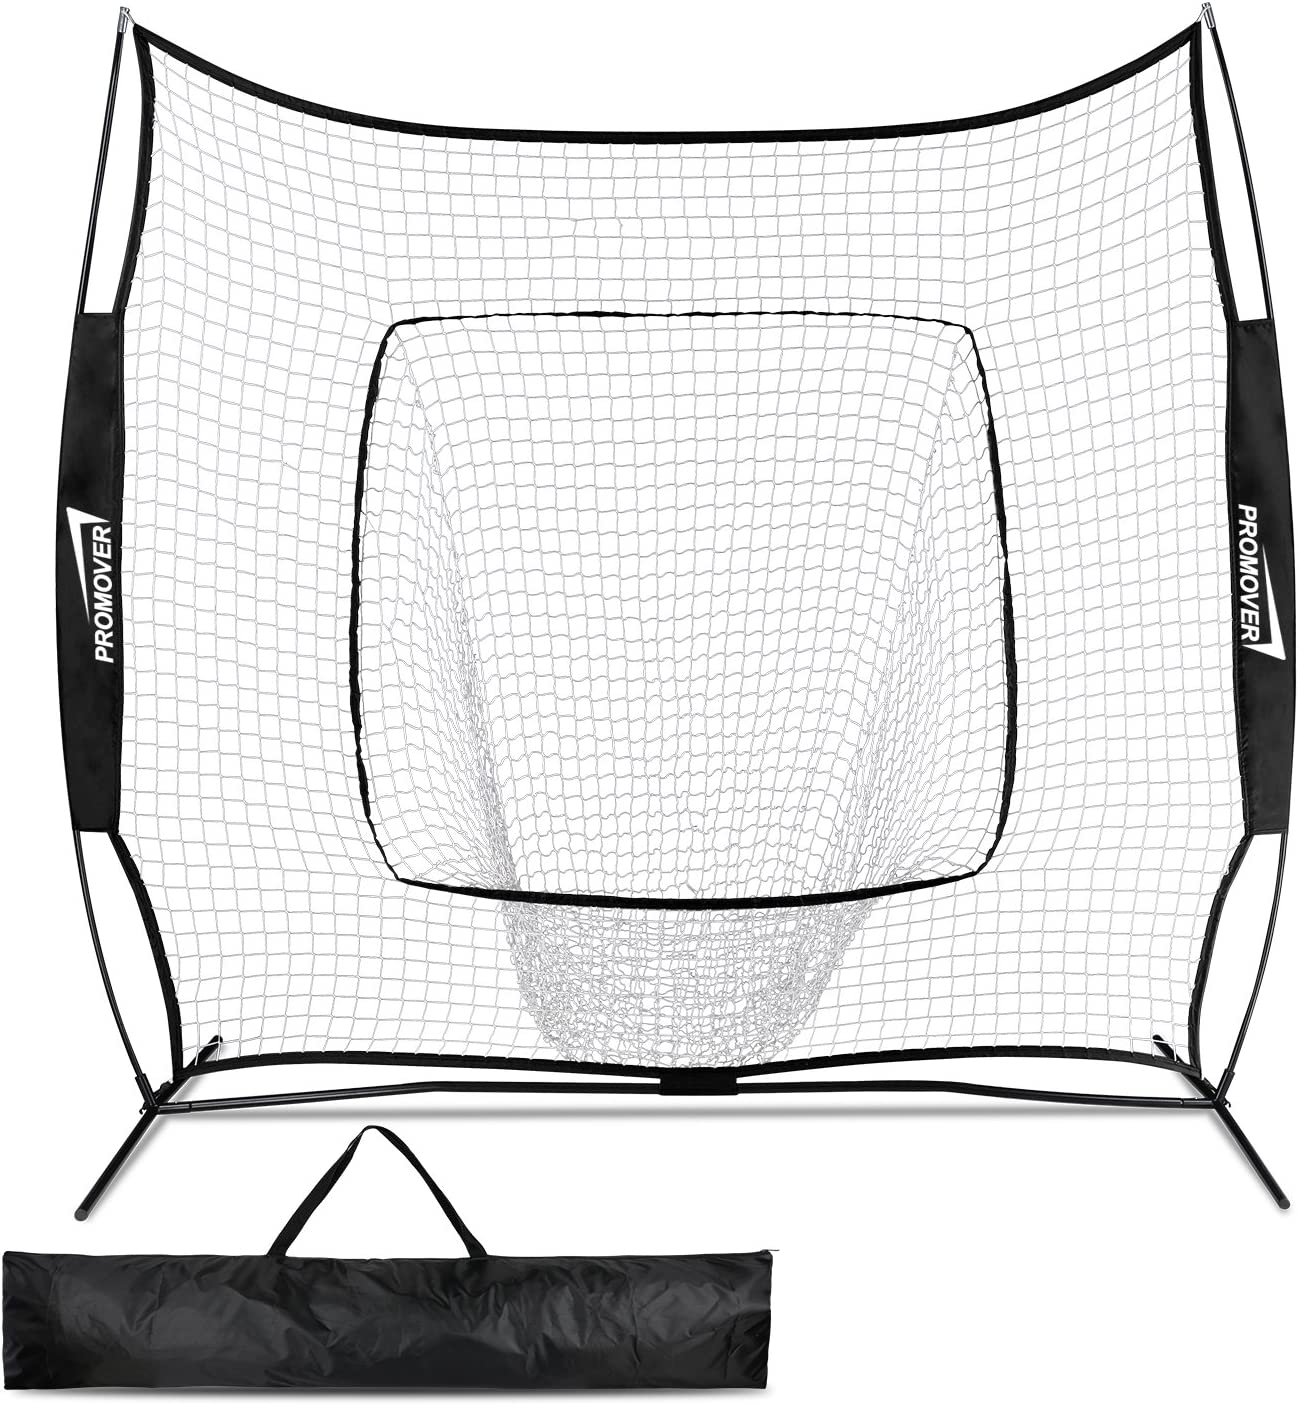 Promover Baseball Softball Practice Net 7 x 7 with Bow Frame Carry Bag Strike Zone for Practice Hitting, Pitching, Batting, Fielding and Catching